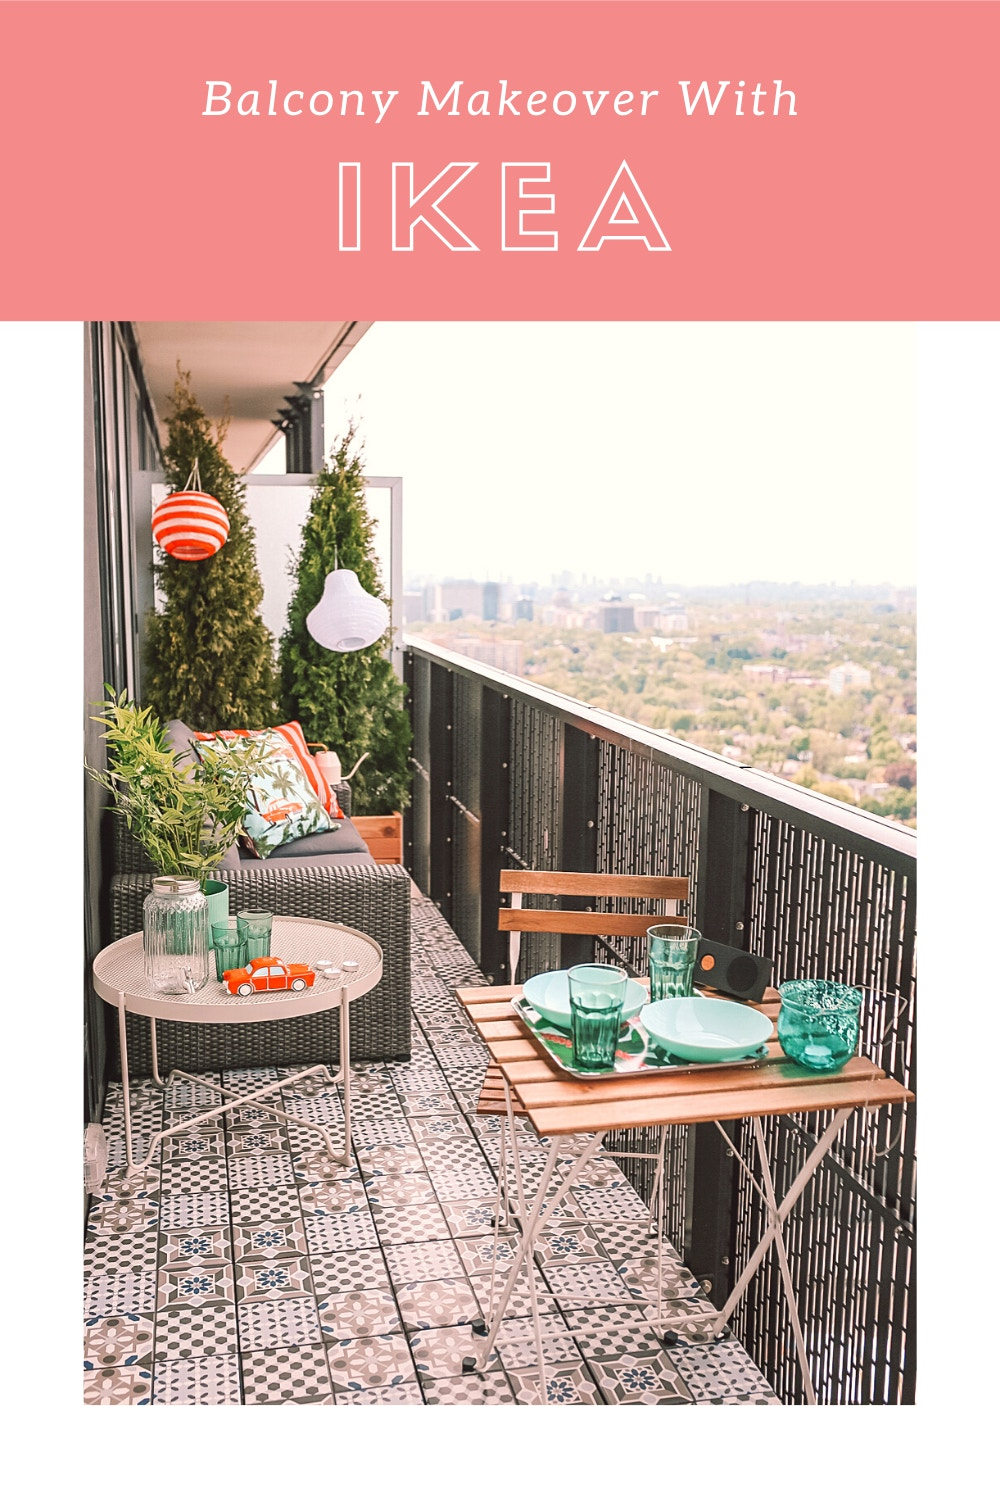 IKEA Patio Furniture Review & Makeover: check out how I gave my condo balcony a refresh with IKEA. I'm also sharing in-depth reviews of the IKEA Solleron series sofa, Mallsten tile decking from IKEA and all the cutest outdoor accessories to make your space an oasis in a concrete jungle.